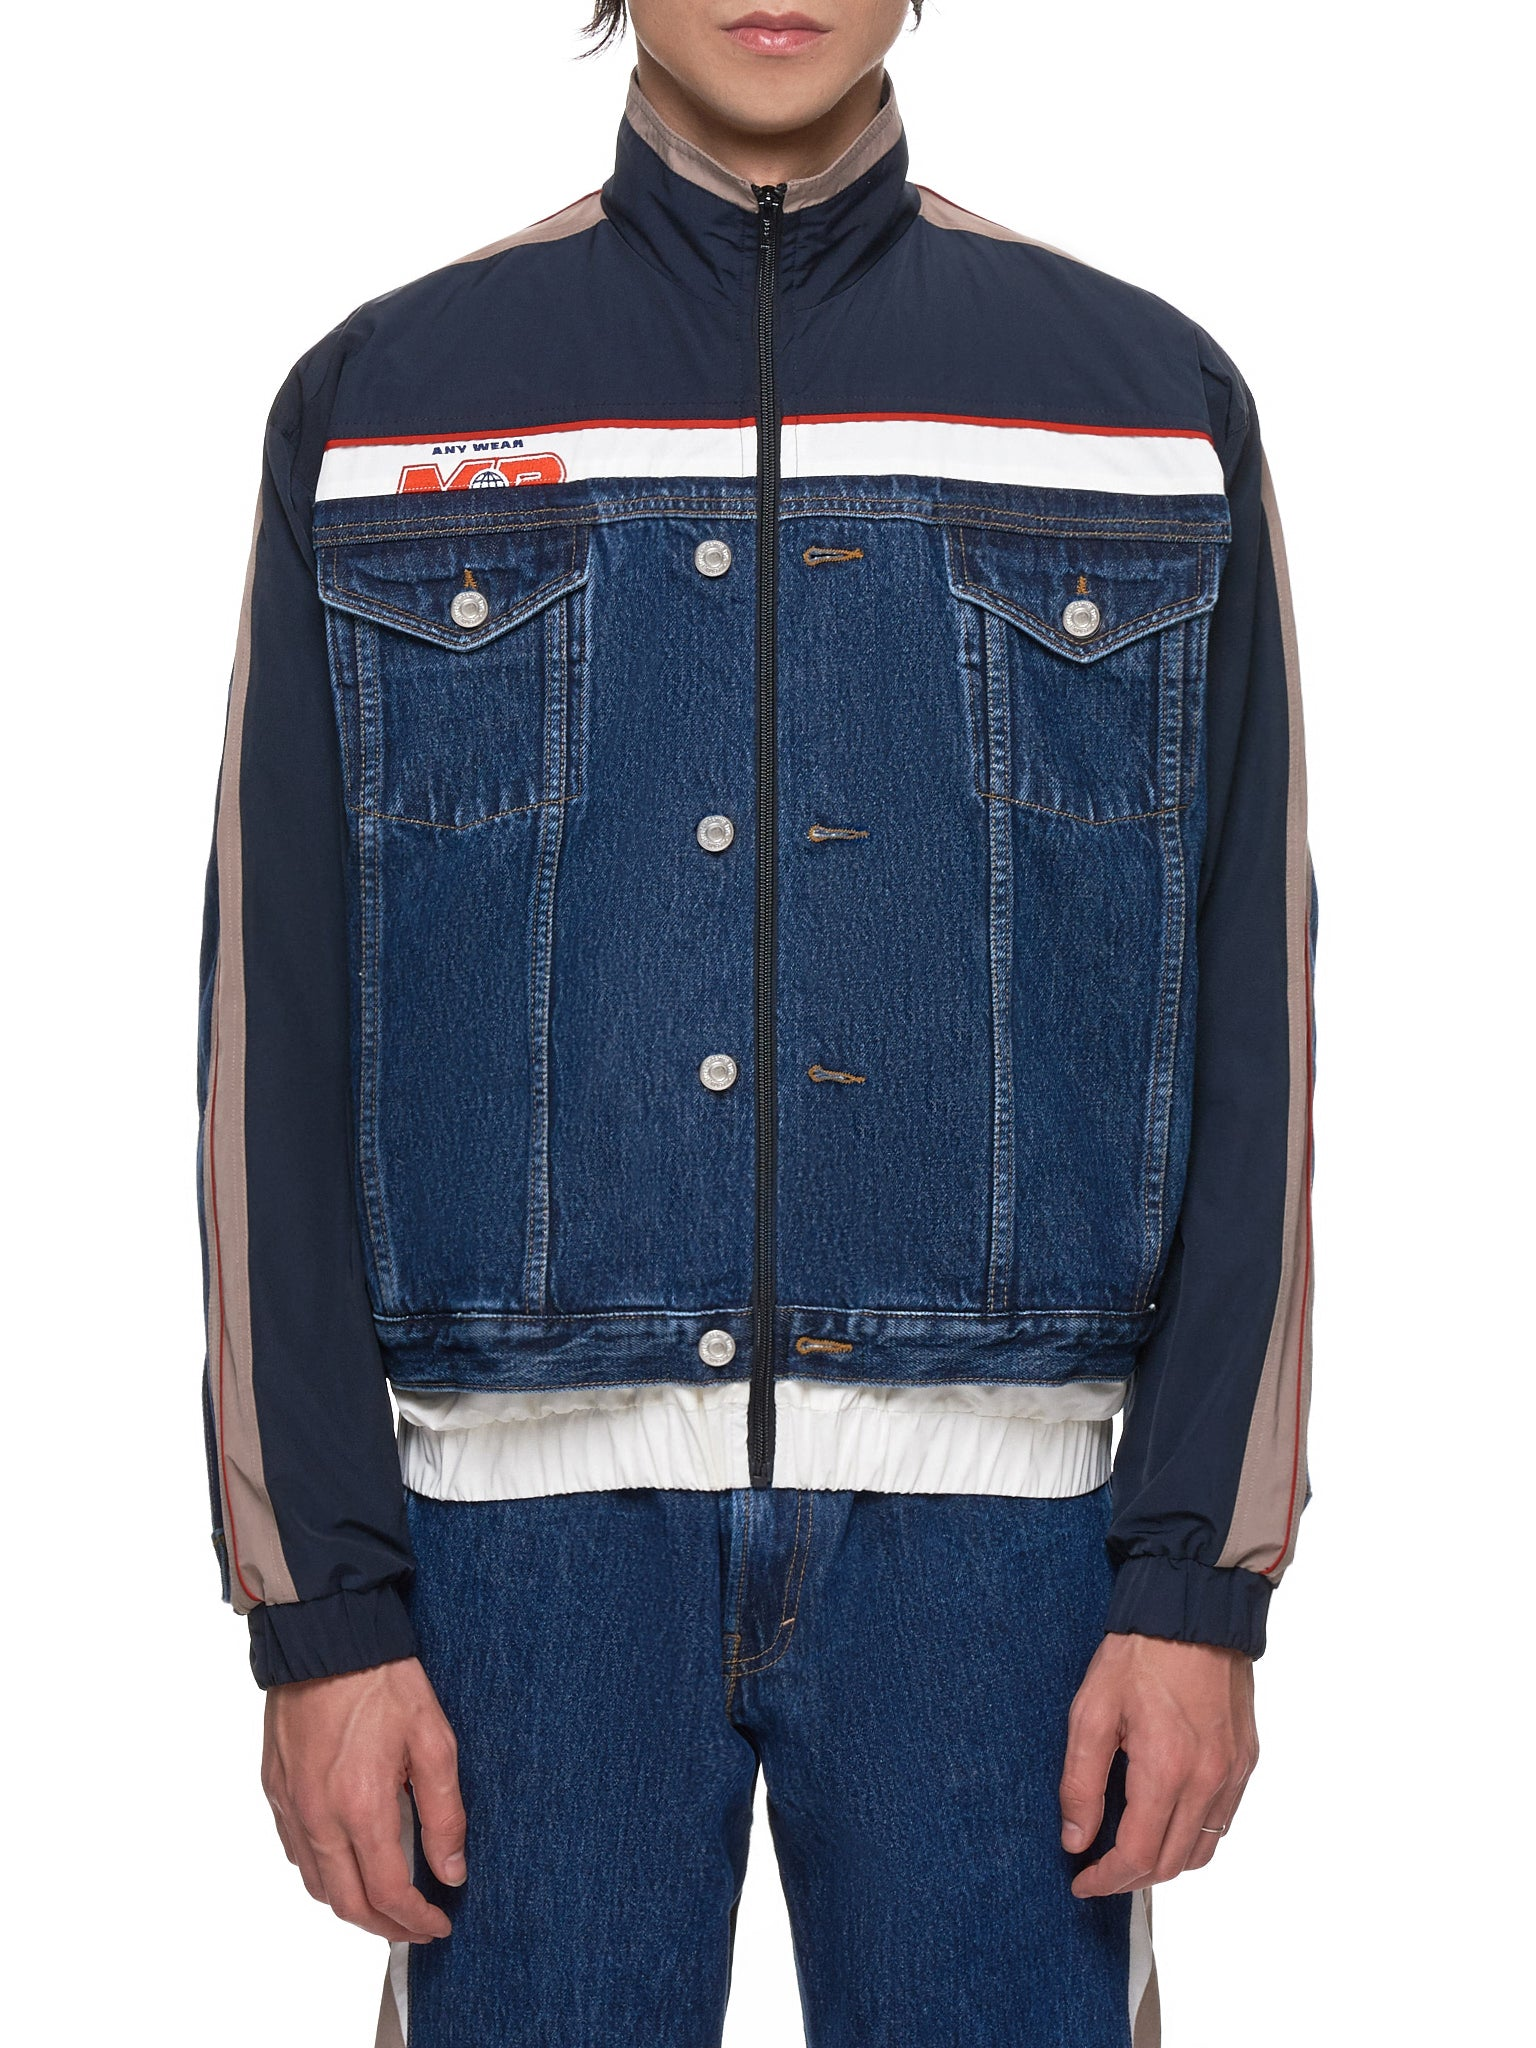 Martine Rose Denim Jacket - Hlorenzo Front